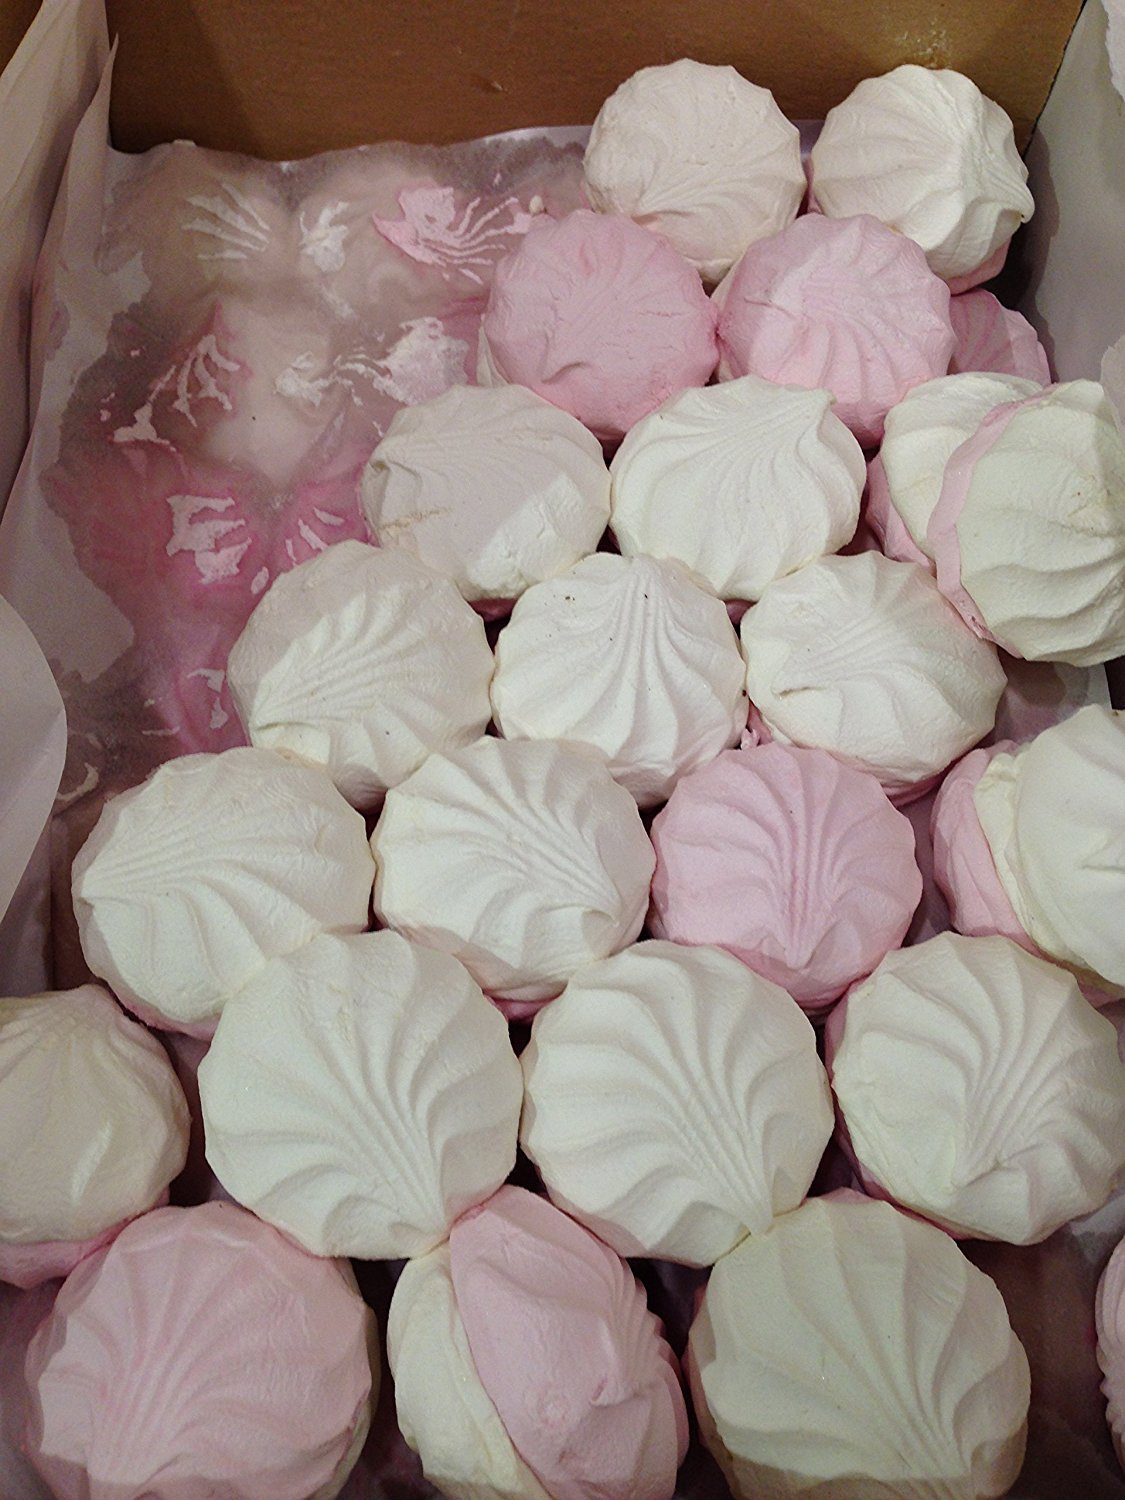 Imported Russian Loose Zefir (Marshmallow) 2LB, 900gr.  Includes Exclusive HolanDeli Chocolate Mints. by Neva